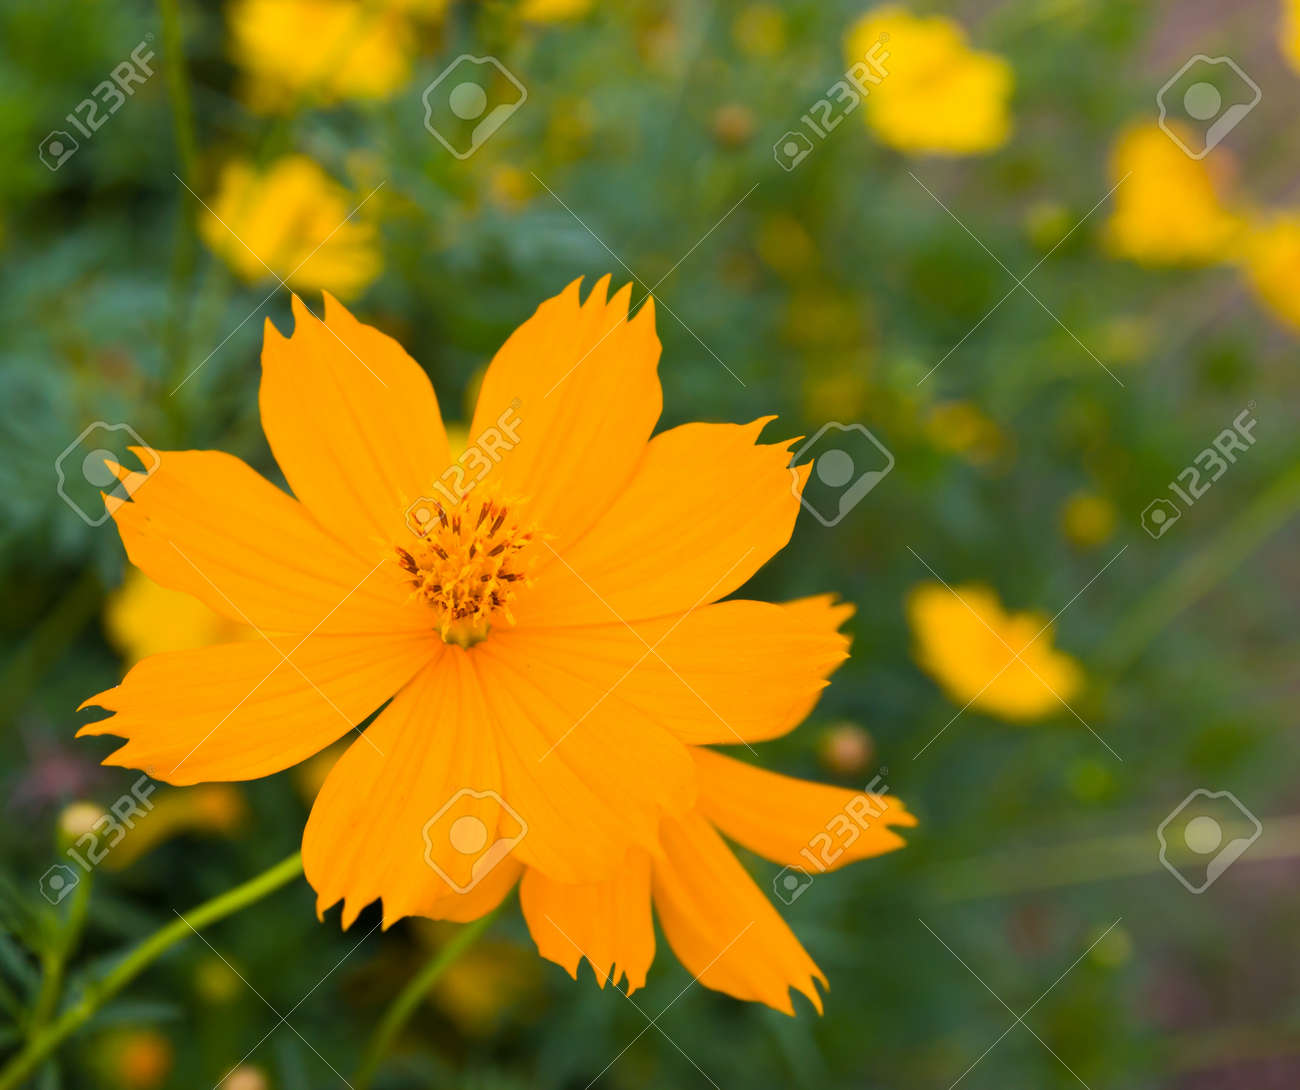 Yellow cosmos flower stock photo picture and royalty free image stock photo yellow cosmos flower mightylinksfo